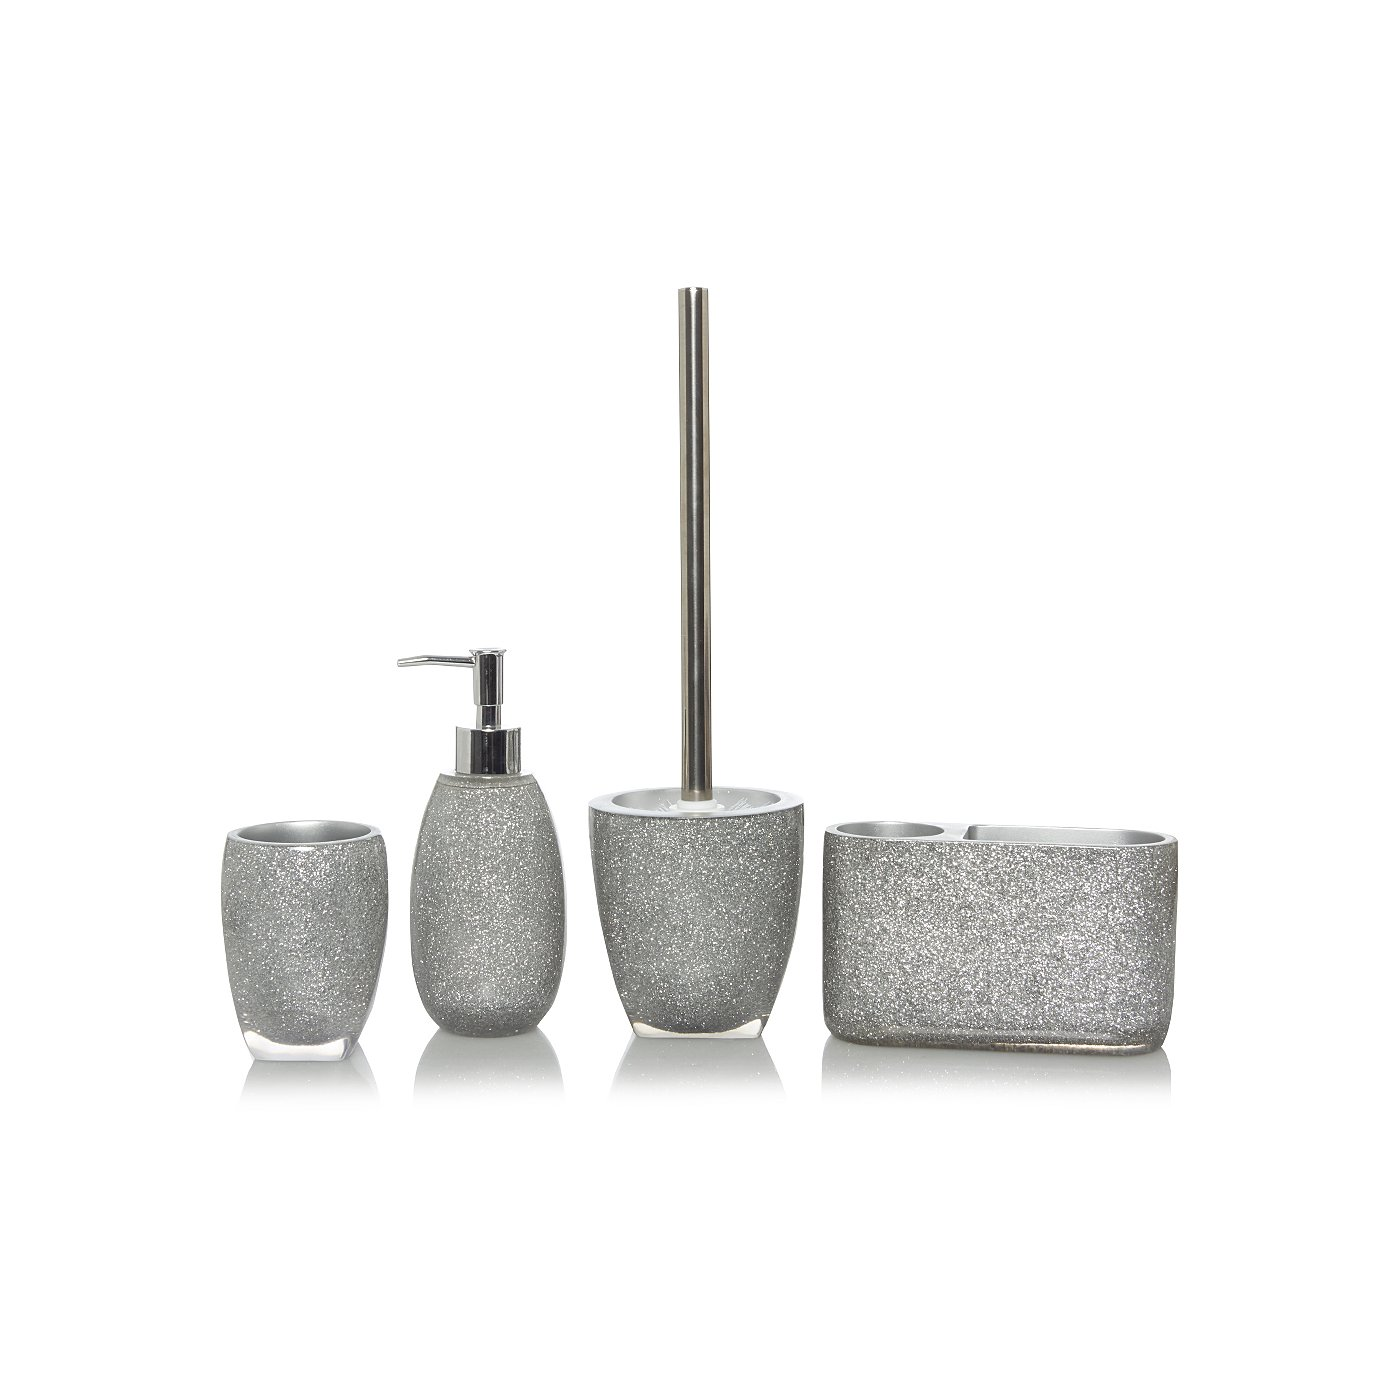 Silver Glitter Bath Accessories Range | Bathroom Accessories ...